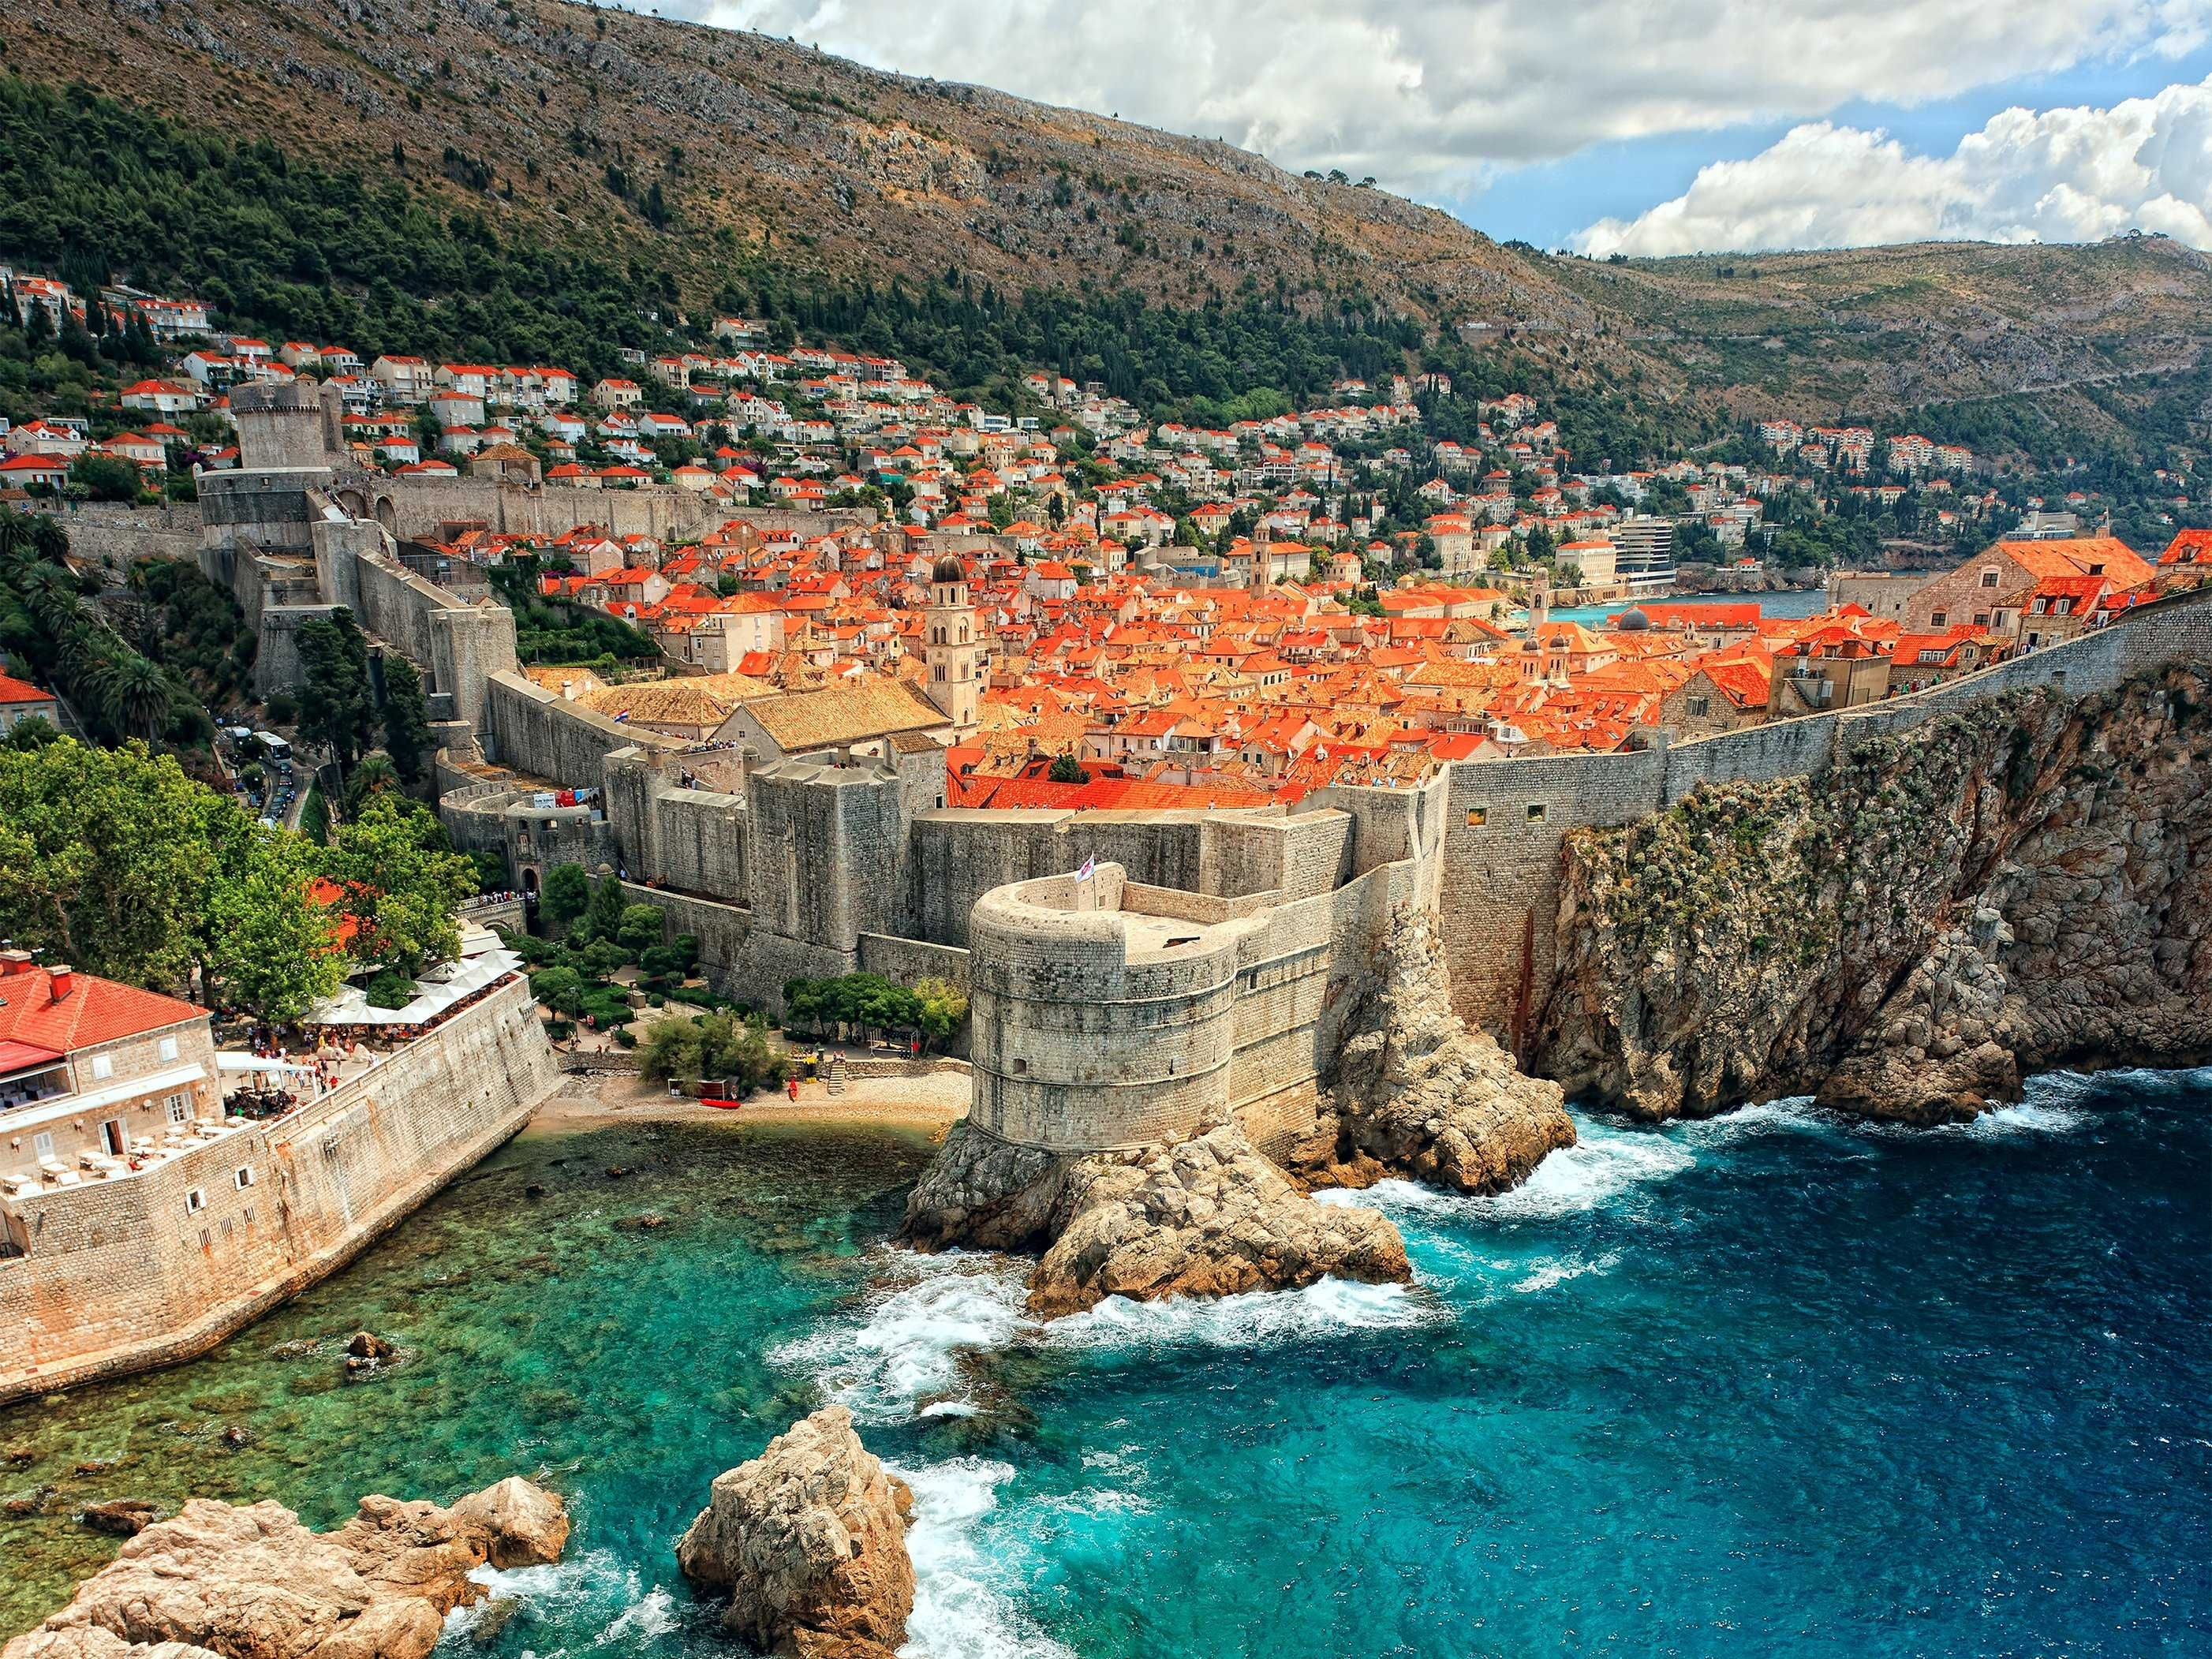 Walled city in Game of Thrones Tour, Croatia